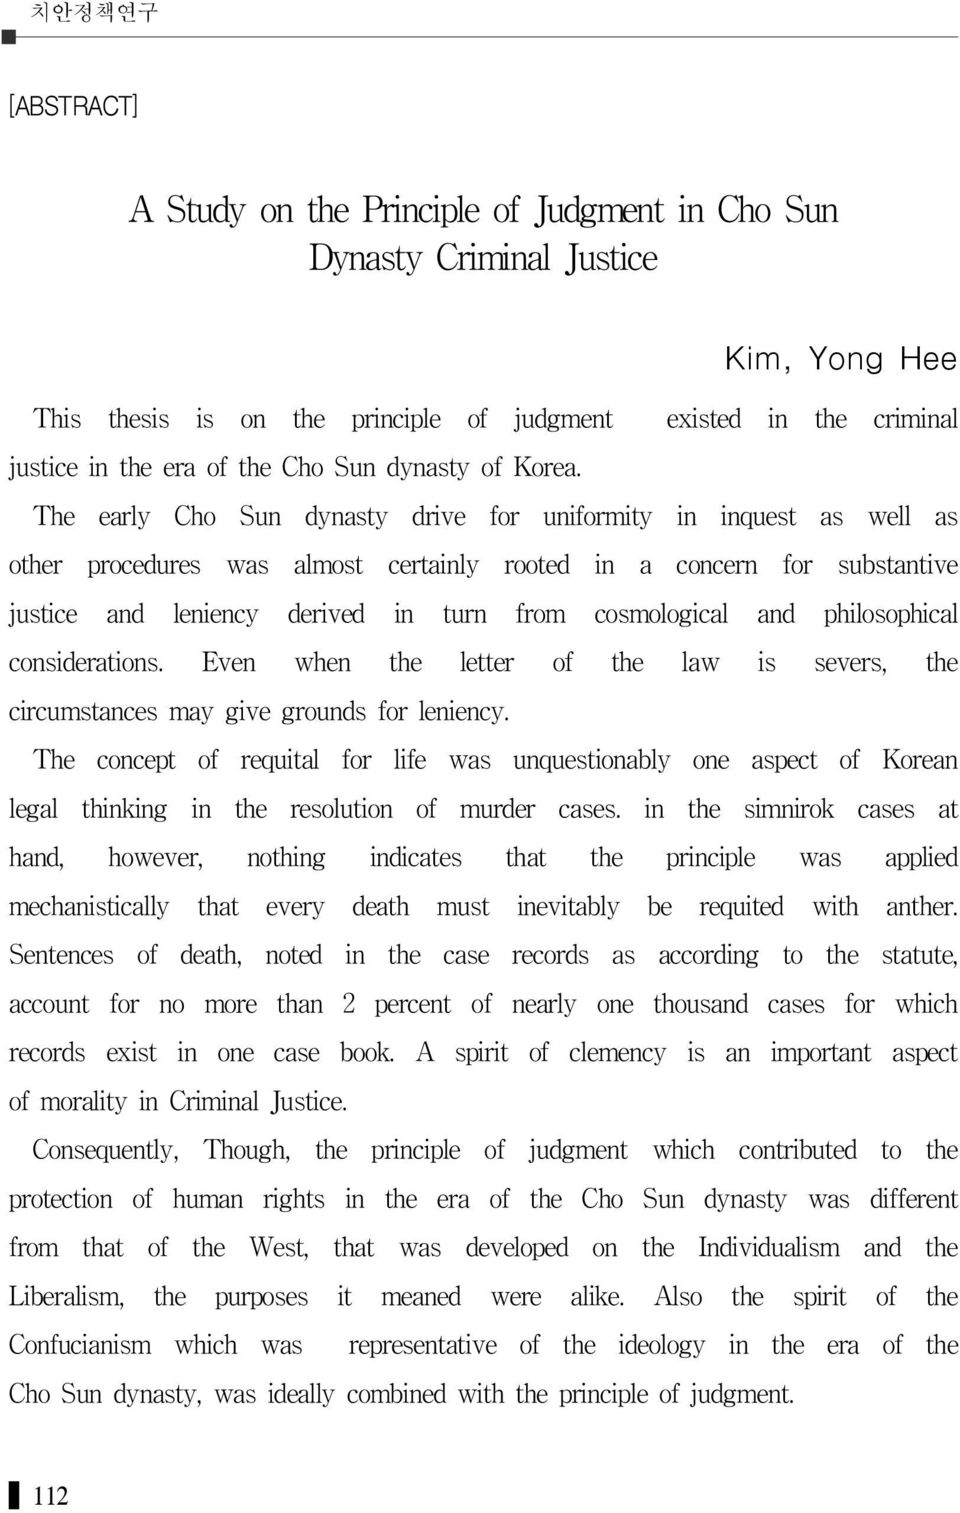 The early Cho Sun dynasty drive for uniformity in inquest as well as other procedures was almost certainly rooted in a concern for substantive justice and leniency derived in turn from cosmological